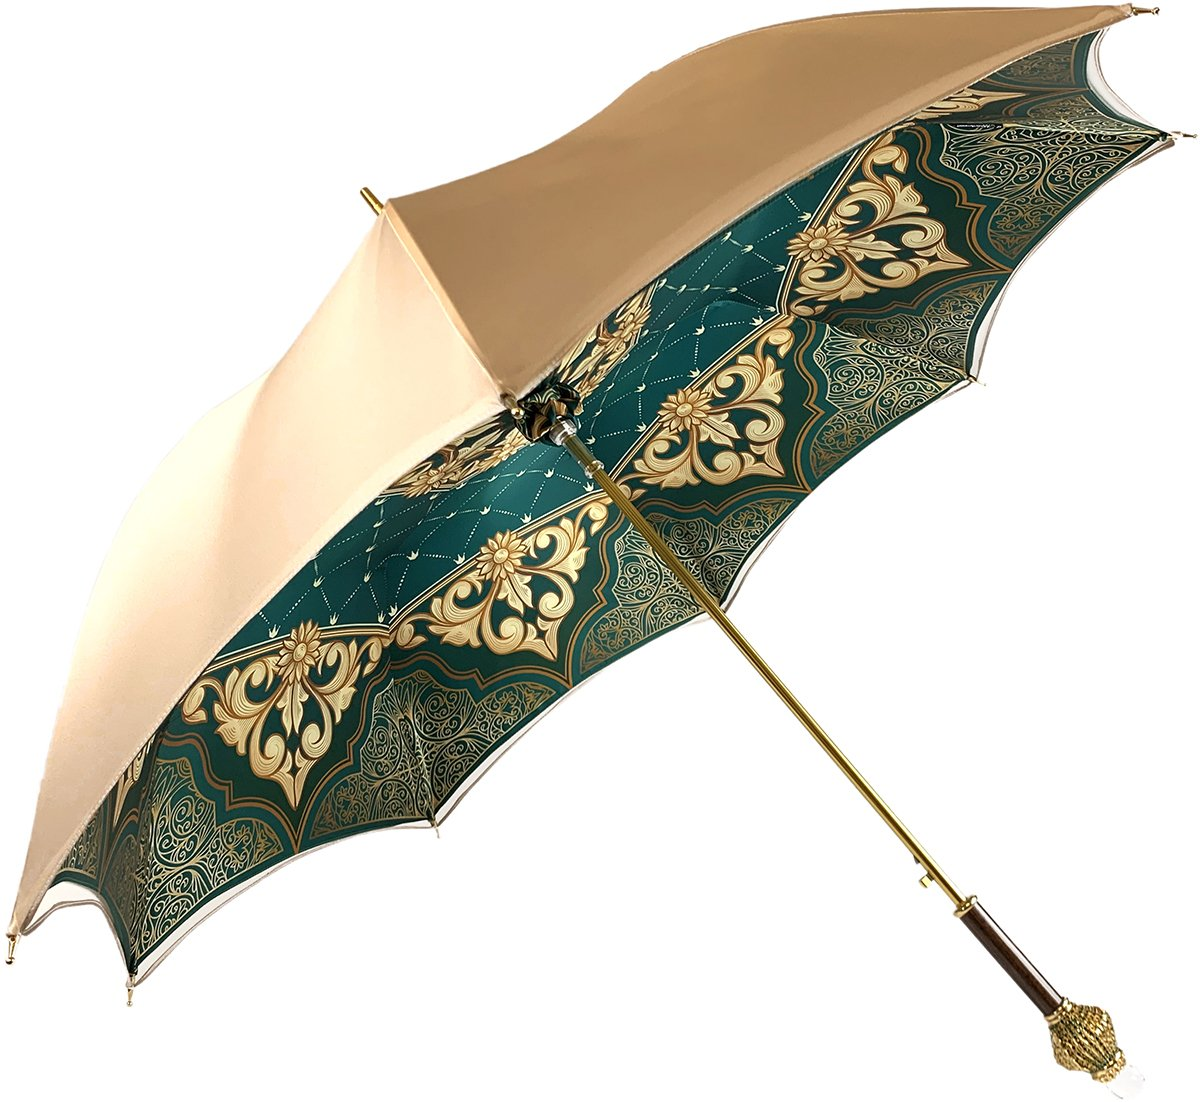 Gorgeous Cream Color Umbrella With Double Fabric